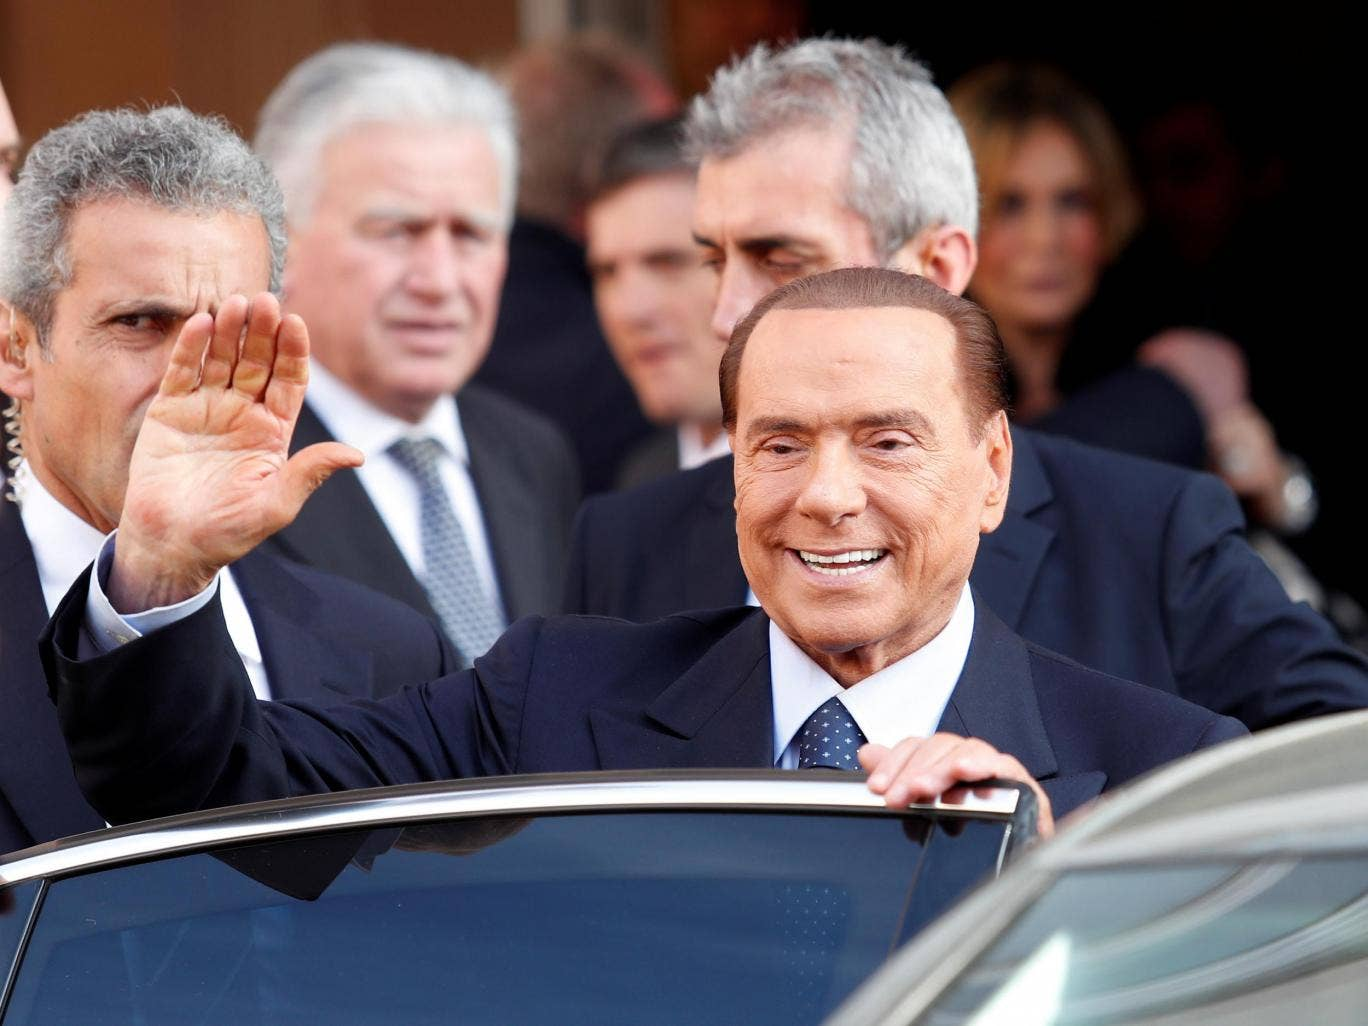 Silvio Berlusconi wants to marry a girl who is almost 50 years younger than him 25.09.2013 20